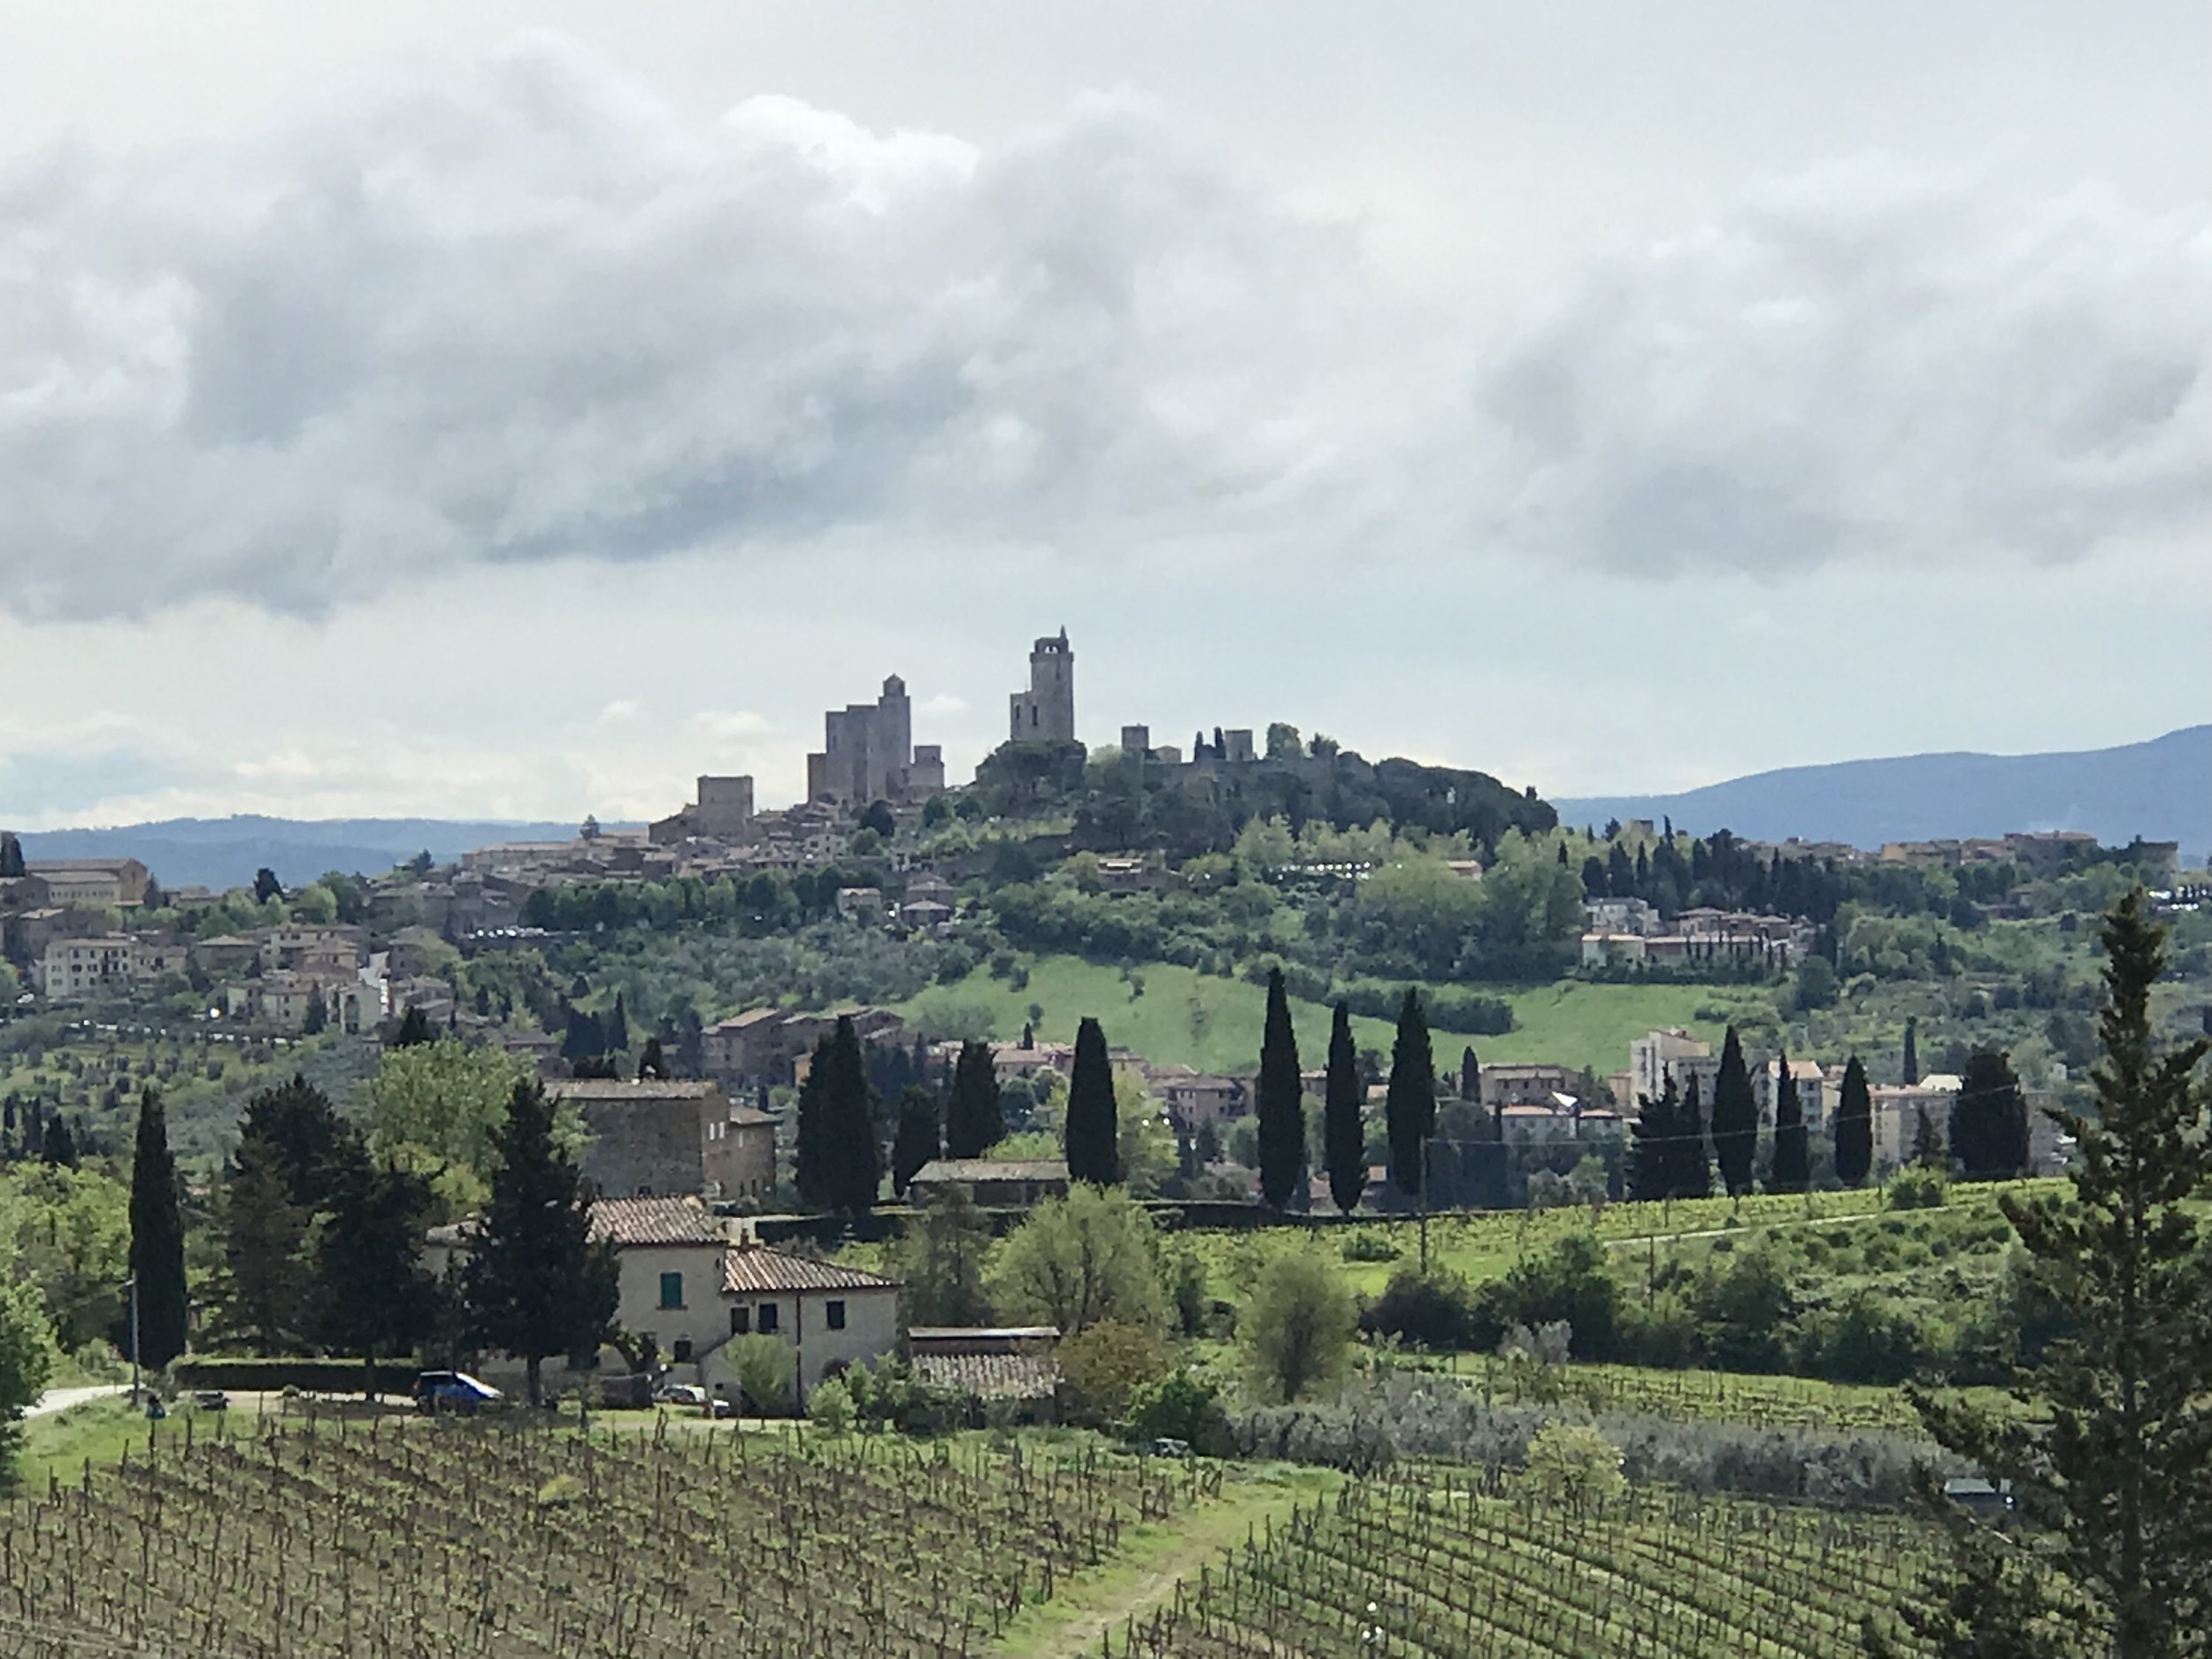 San Gimignano, the Town of Fine Towers. A UNESCO World Heritage site, it boasted 84 towers at one time. Eighteen still exist.